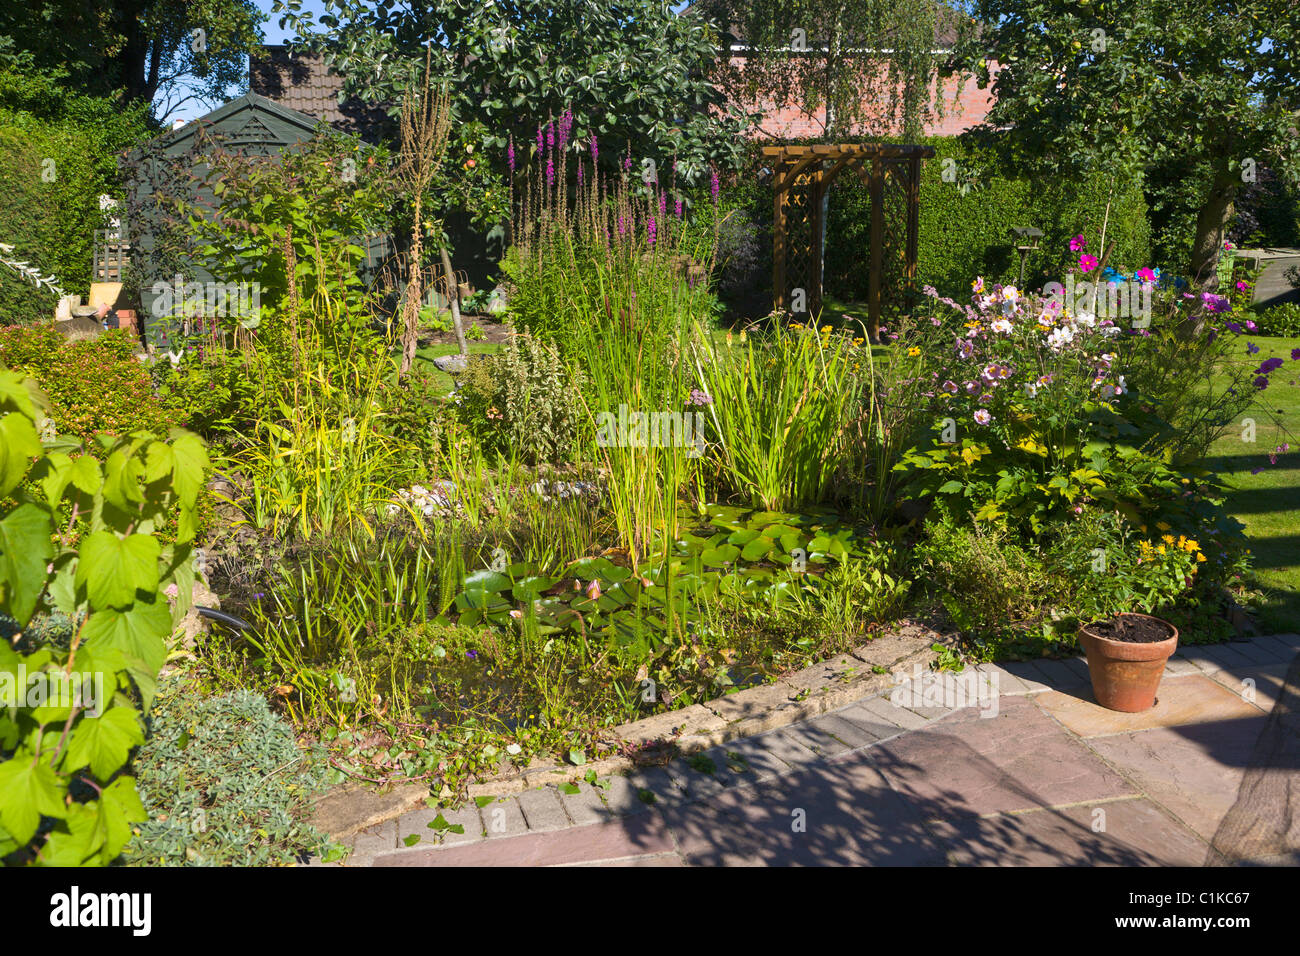 Garden pond and herbaceous border in summer - Stock Image